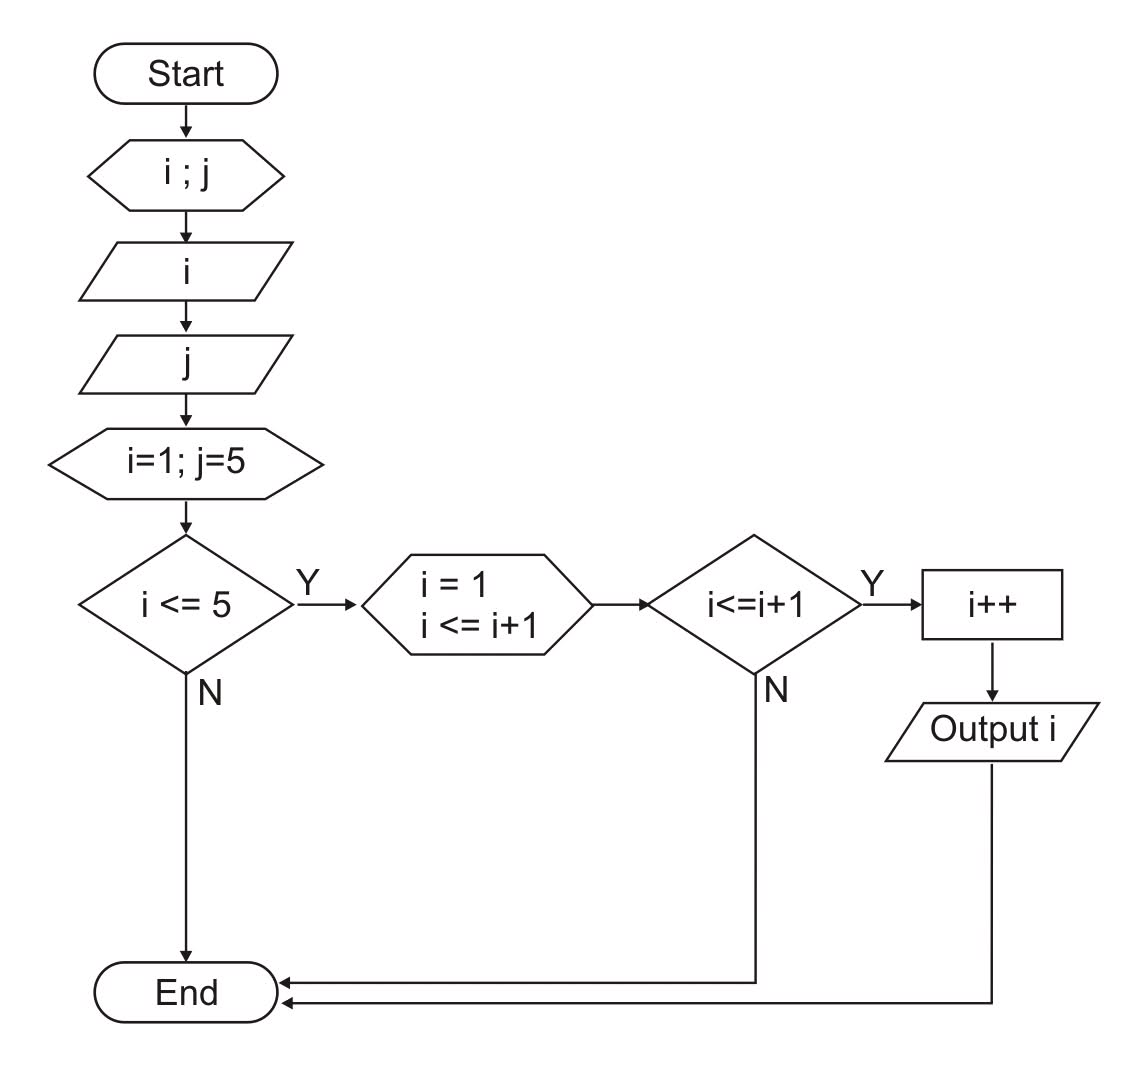 Contoh Flowchart Java Auto Electrical Wiring Diagram